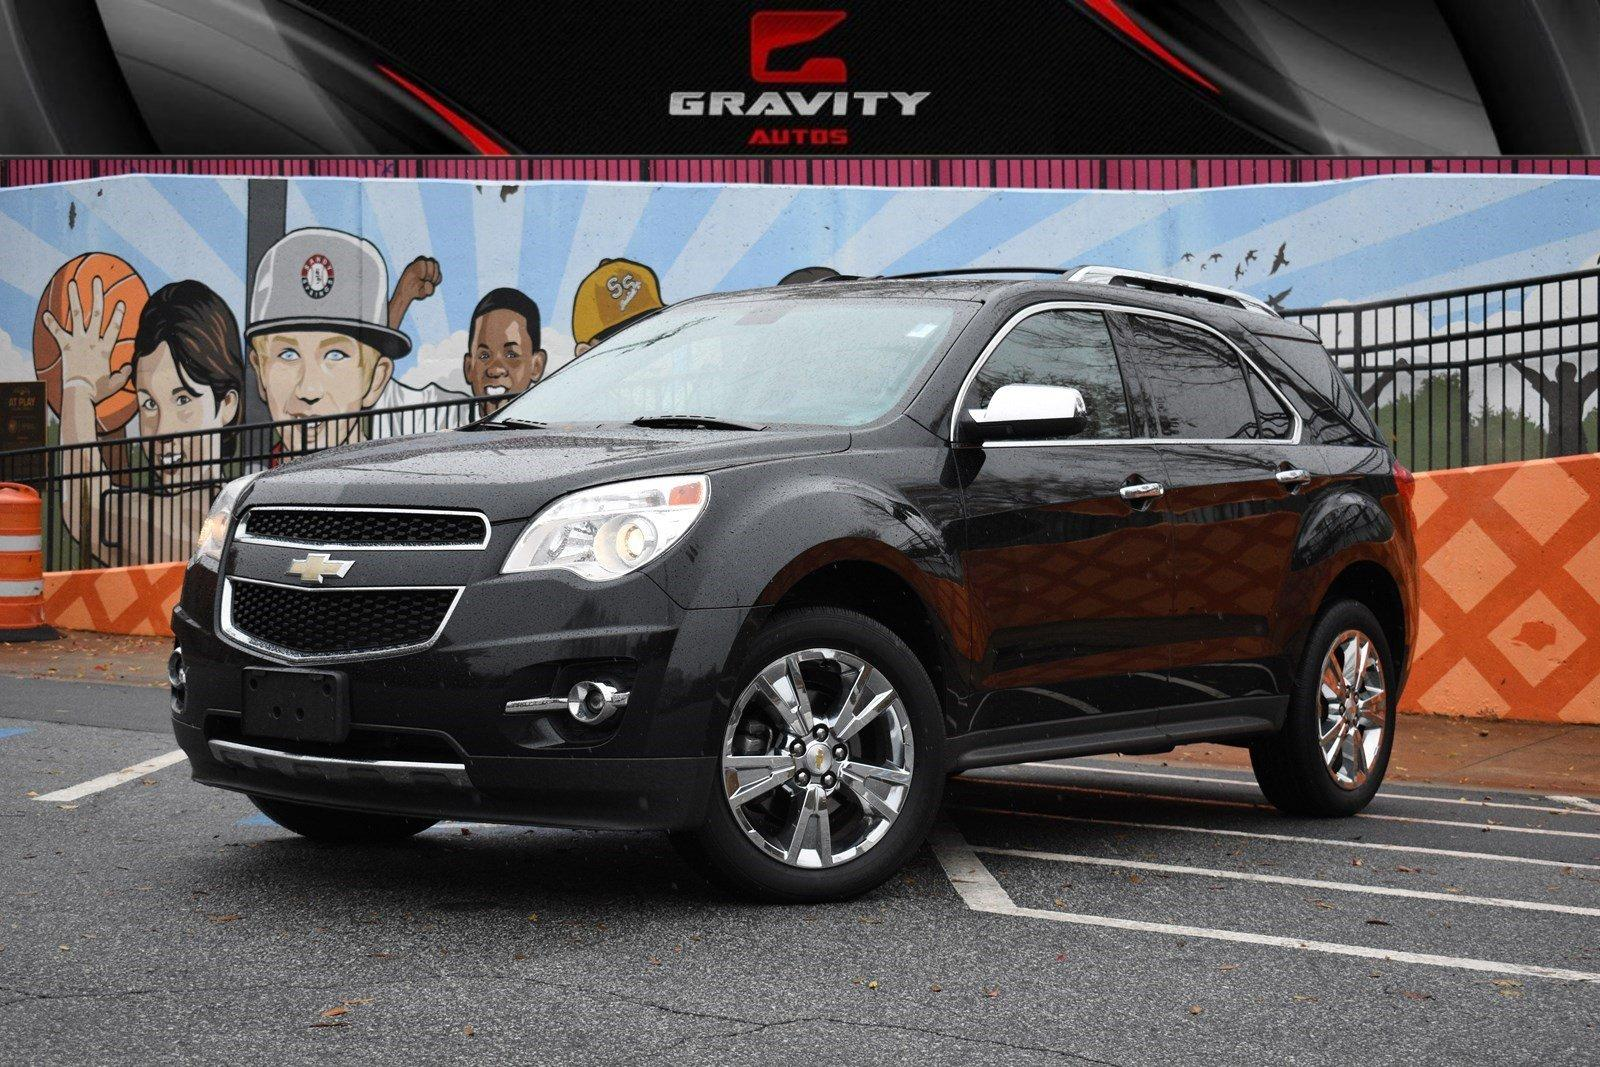 Cash For Cars Near Me >> 2010 Chevrolet Equinox LTZ Stock # 274732 for sale near Sandy Springs, GA | GA Chevrolet Dealer